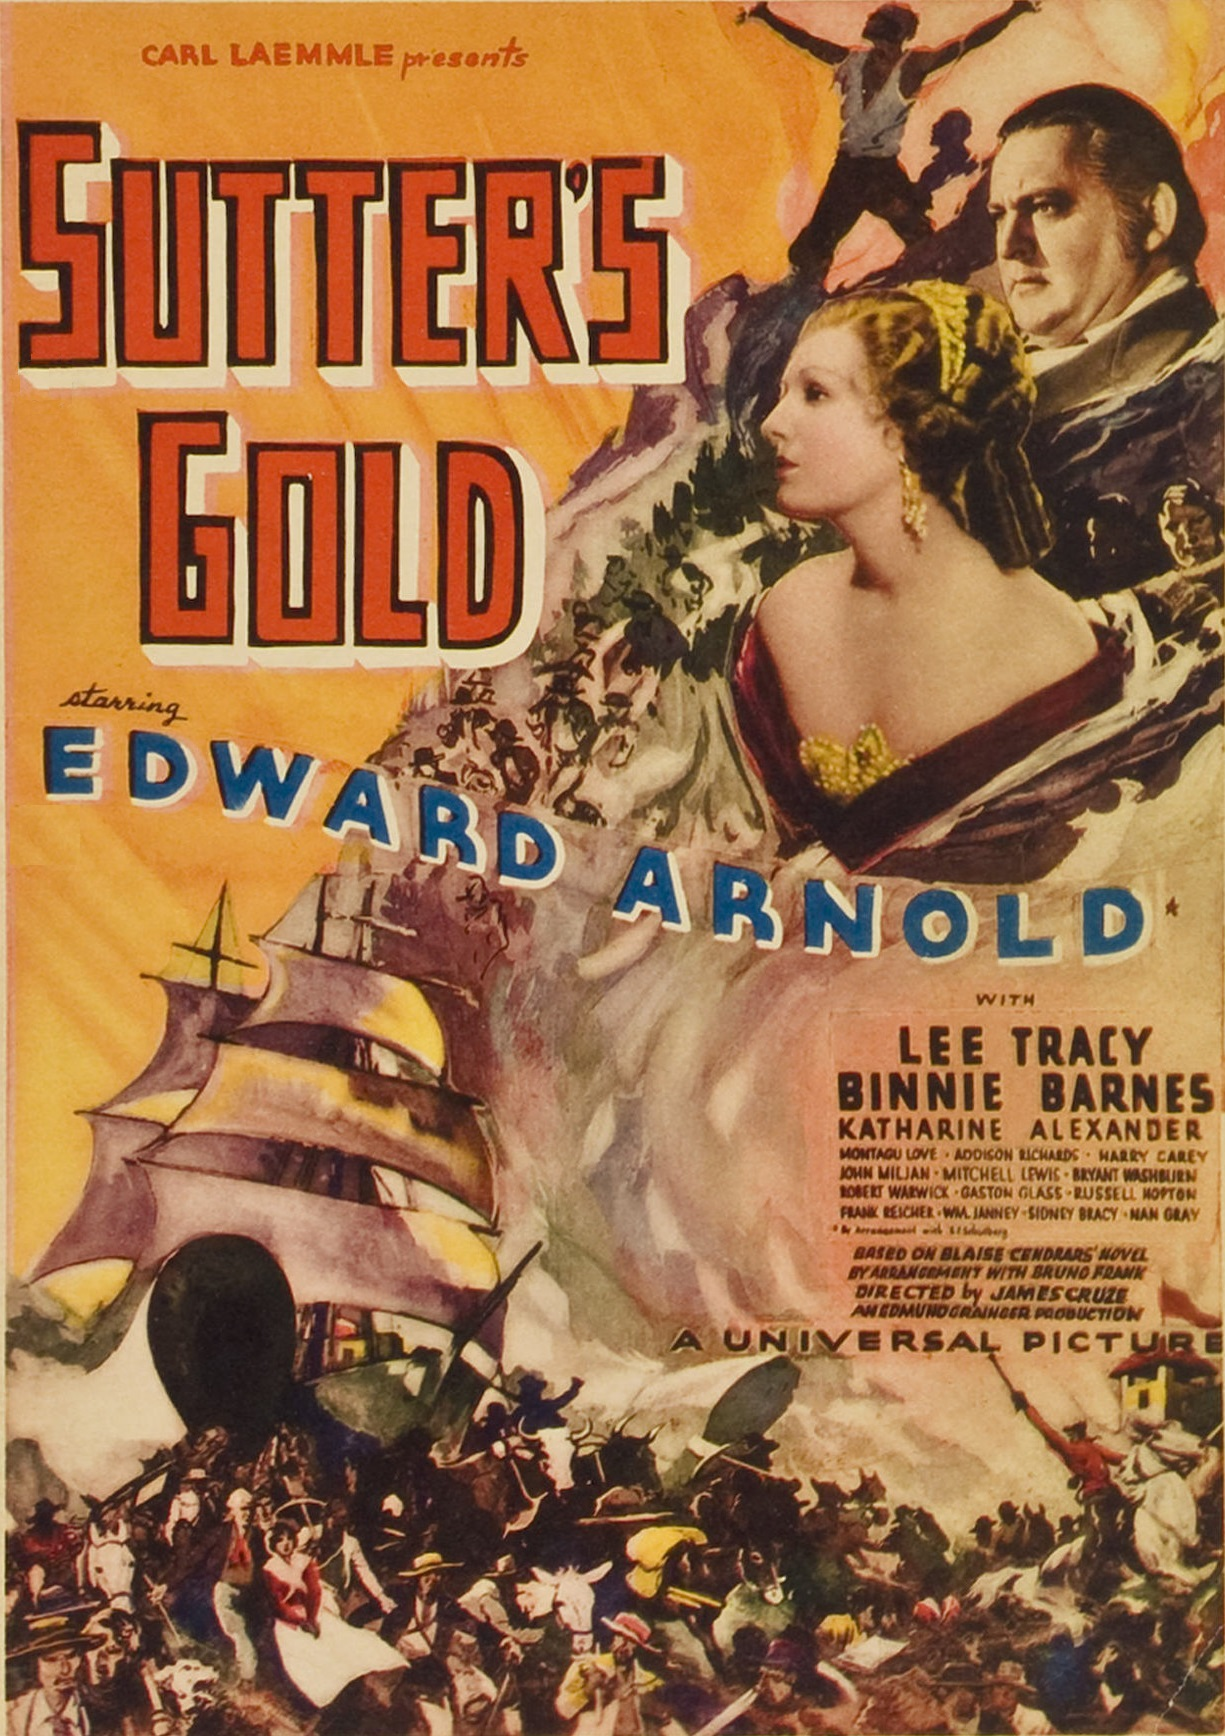 Binnie Barnes and Edward Arnold in Sutter's Gold (1936)